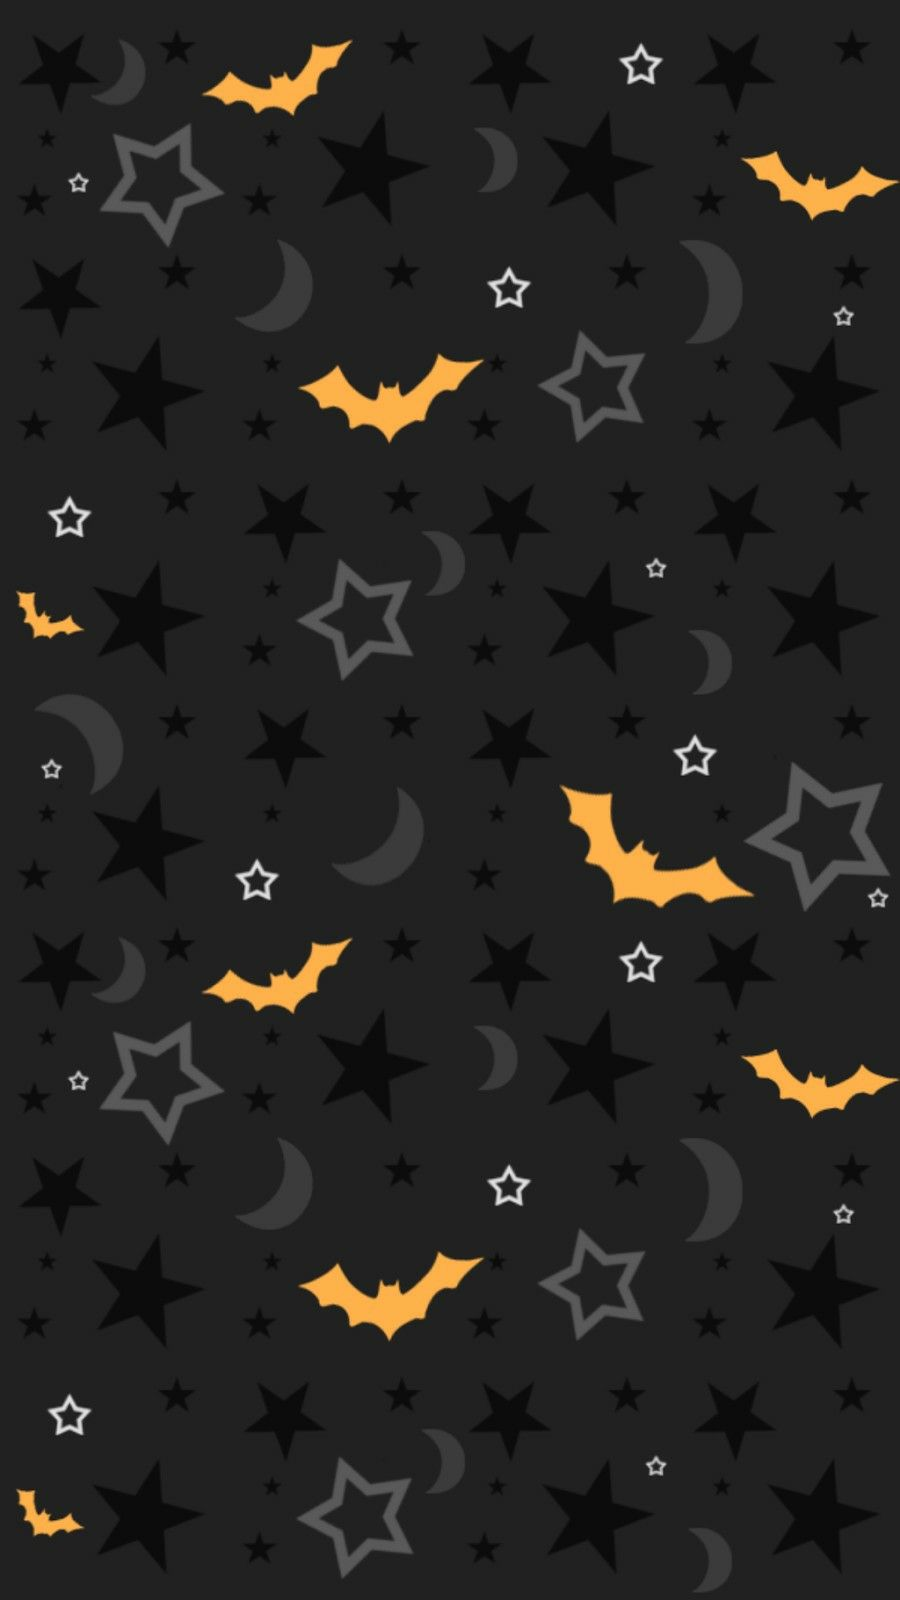 Halloween iPhone wallpaper Halloween wallpaper iphone